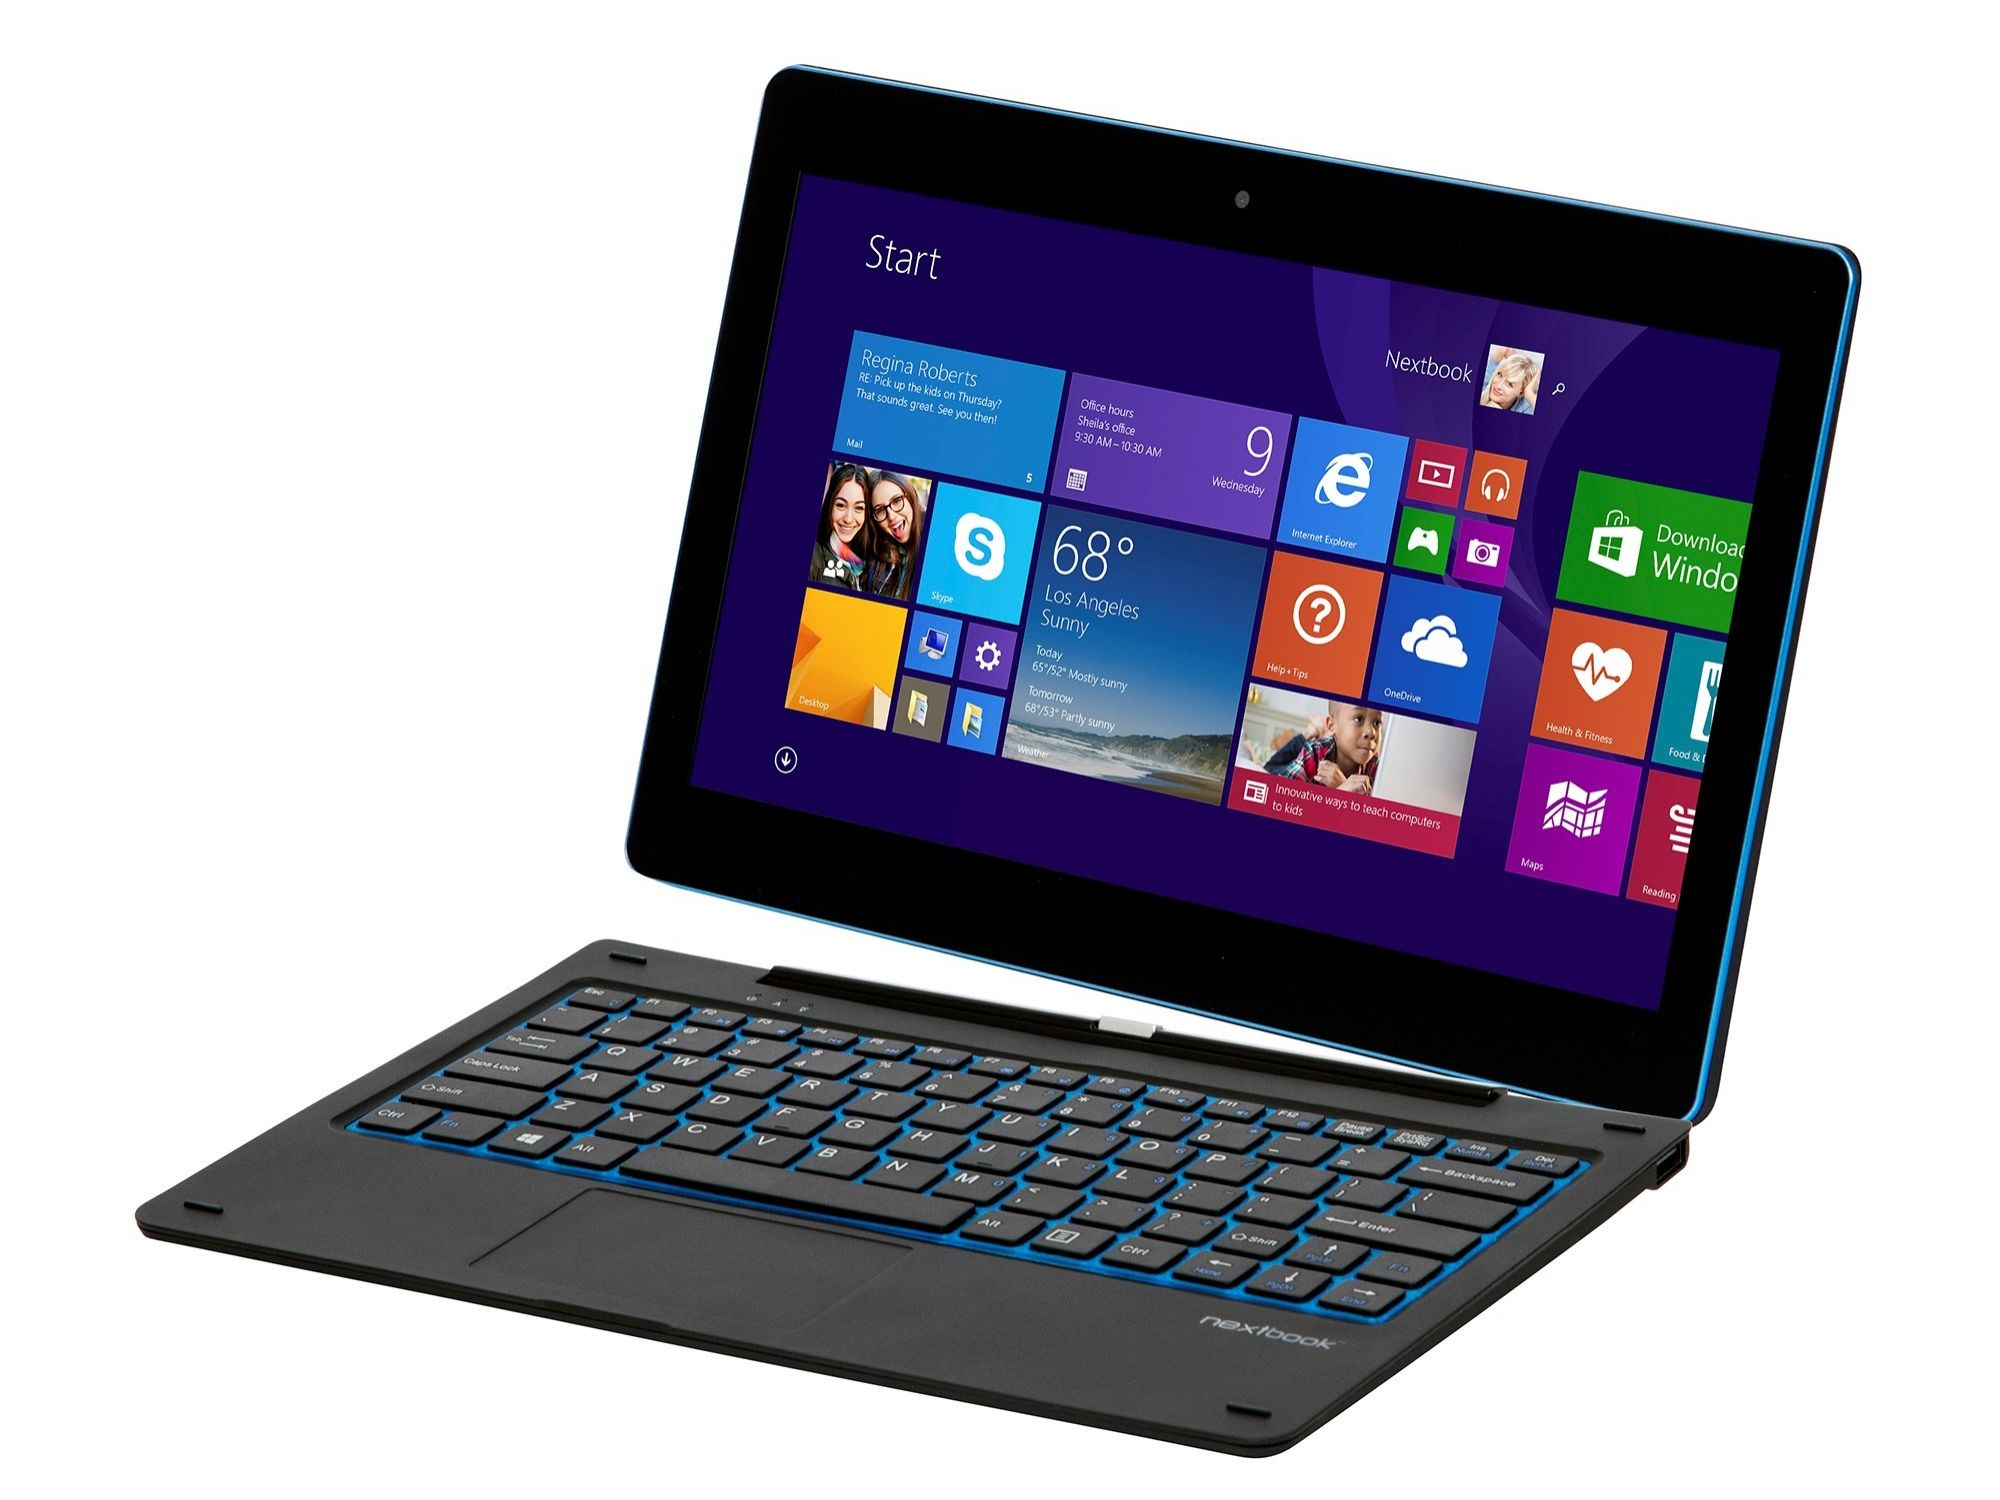 Walmart Now Selling The Nextbook Flexx 10 And 11 2 In 1 Windows 81 Tablets Windows Central